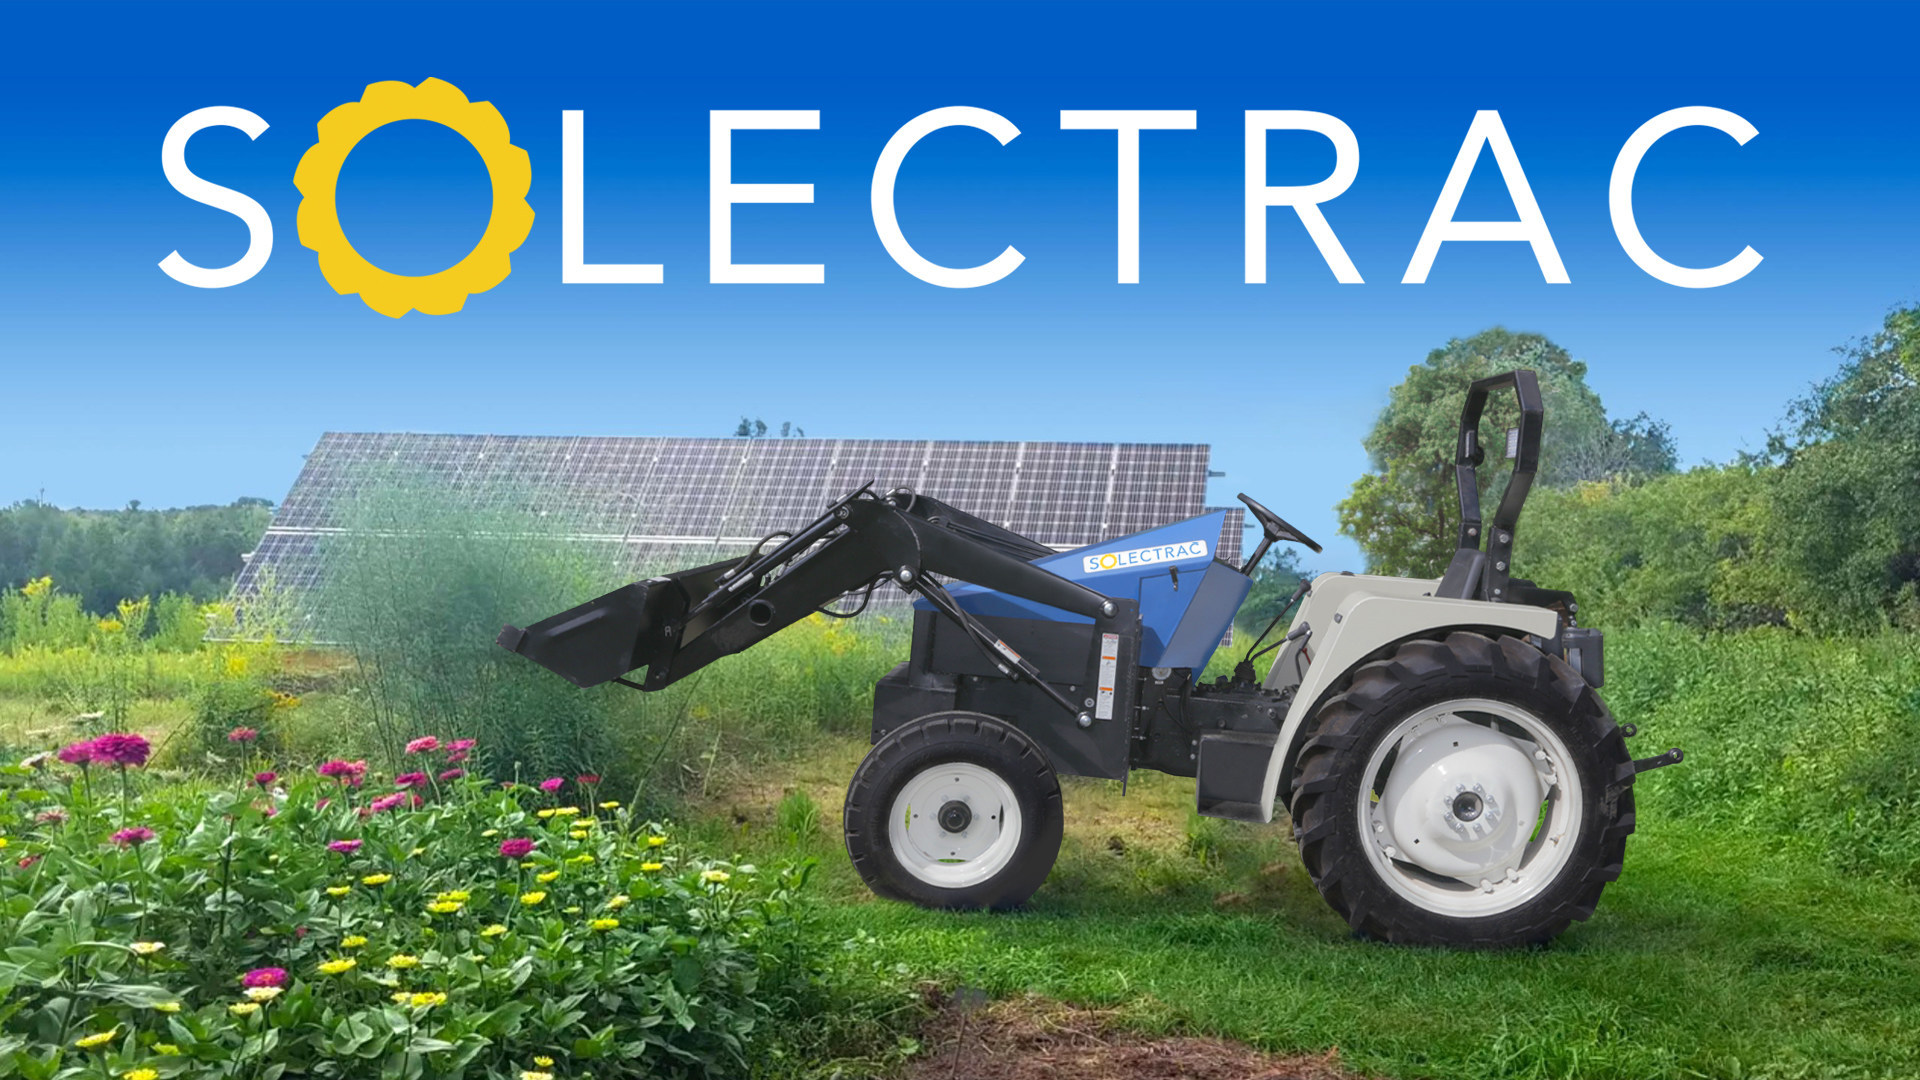 Solectrac Wins 500K Bay Area Air Quality Grant to Demonstrate Electric Tractor Viability